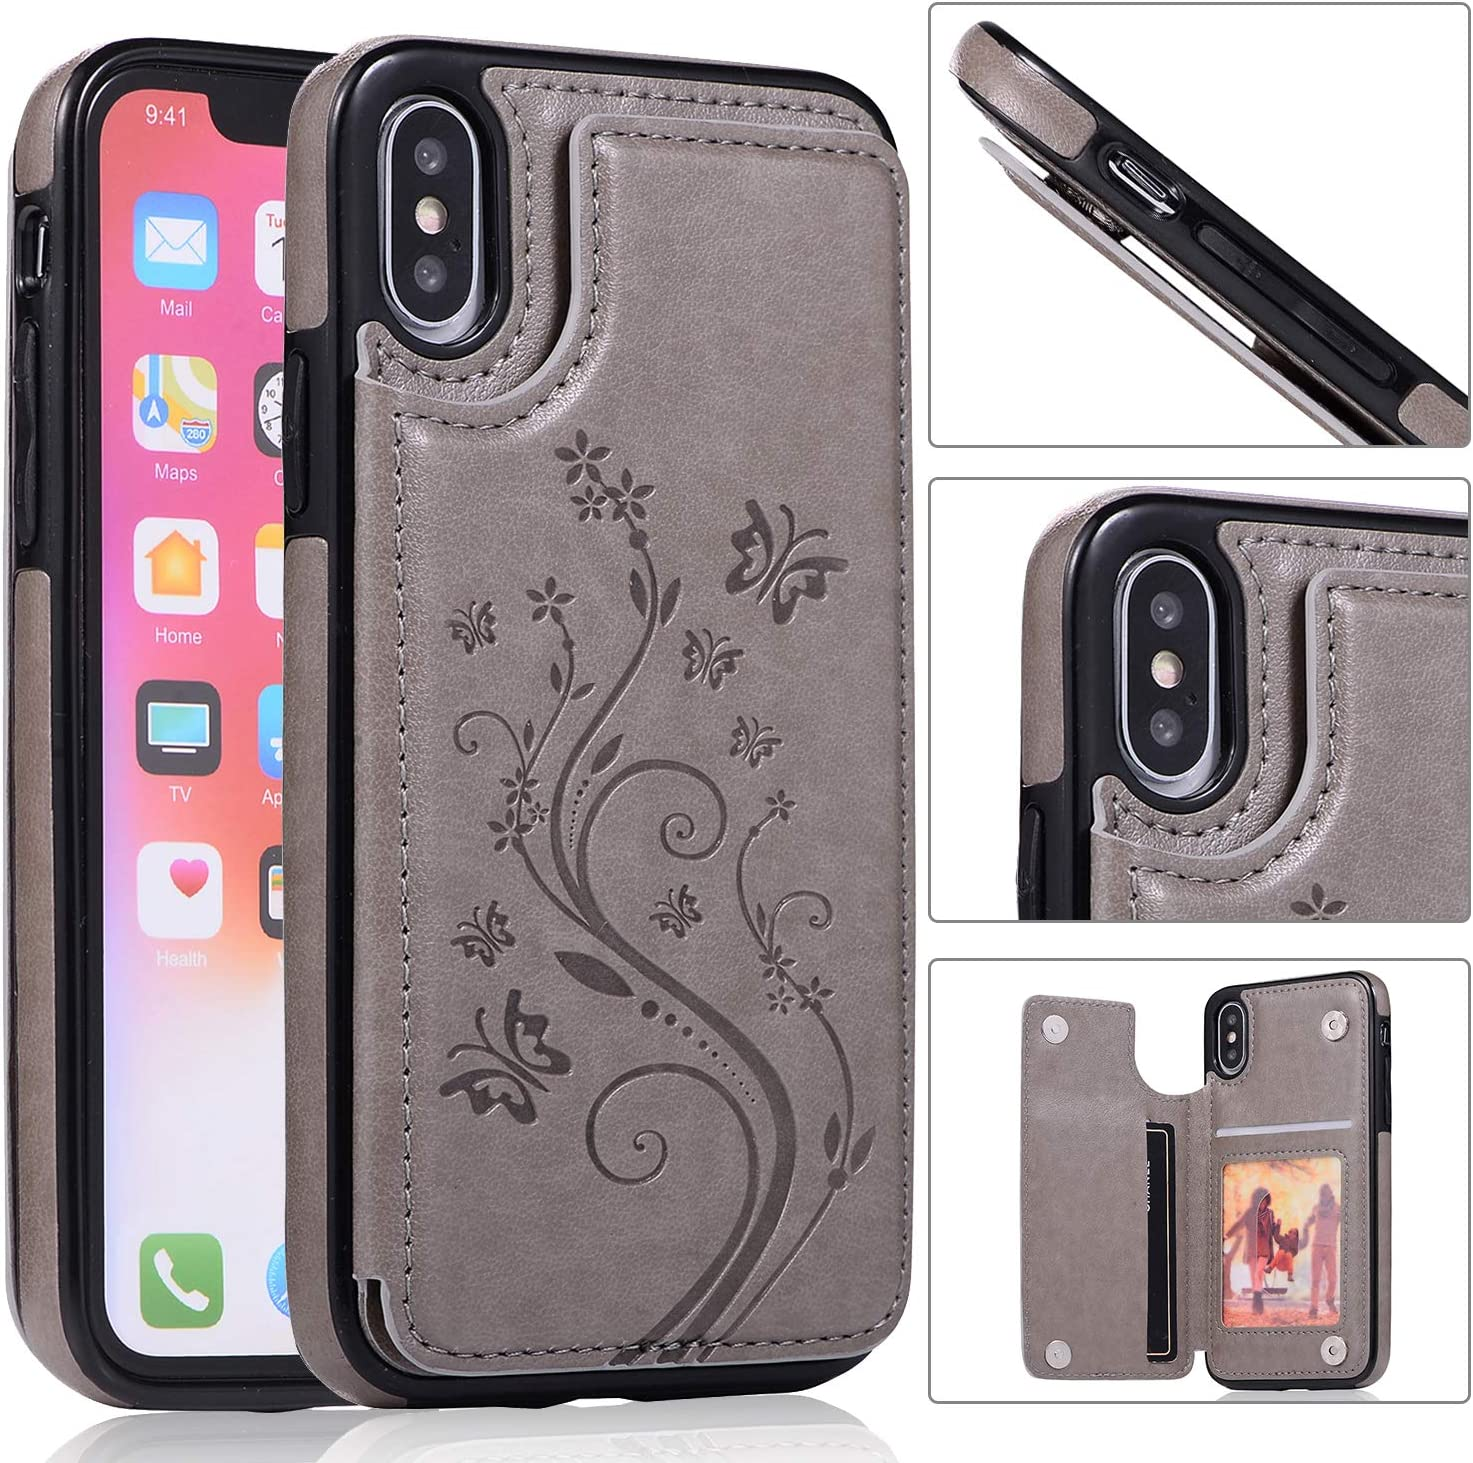 Back Wallet Case for iPhone X Stand QFFUN Emboss free with SEAL limited product XS Elegant